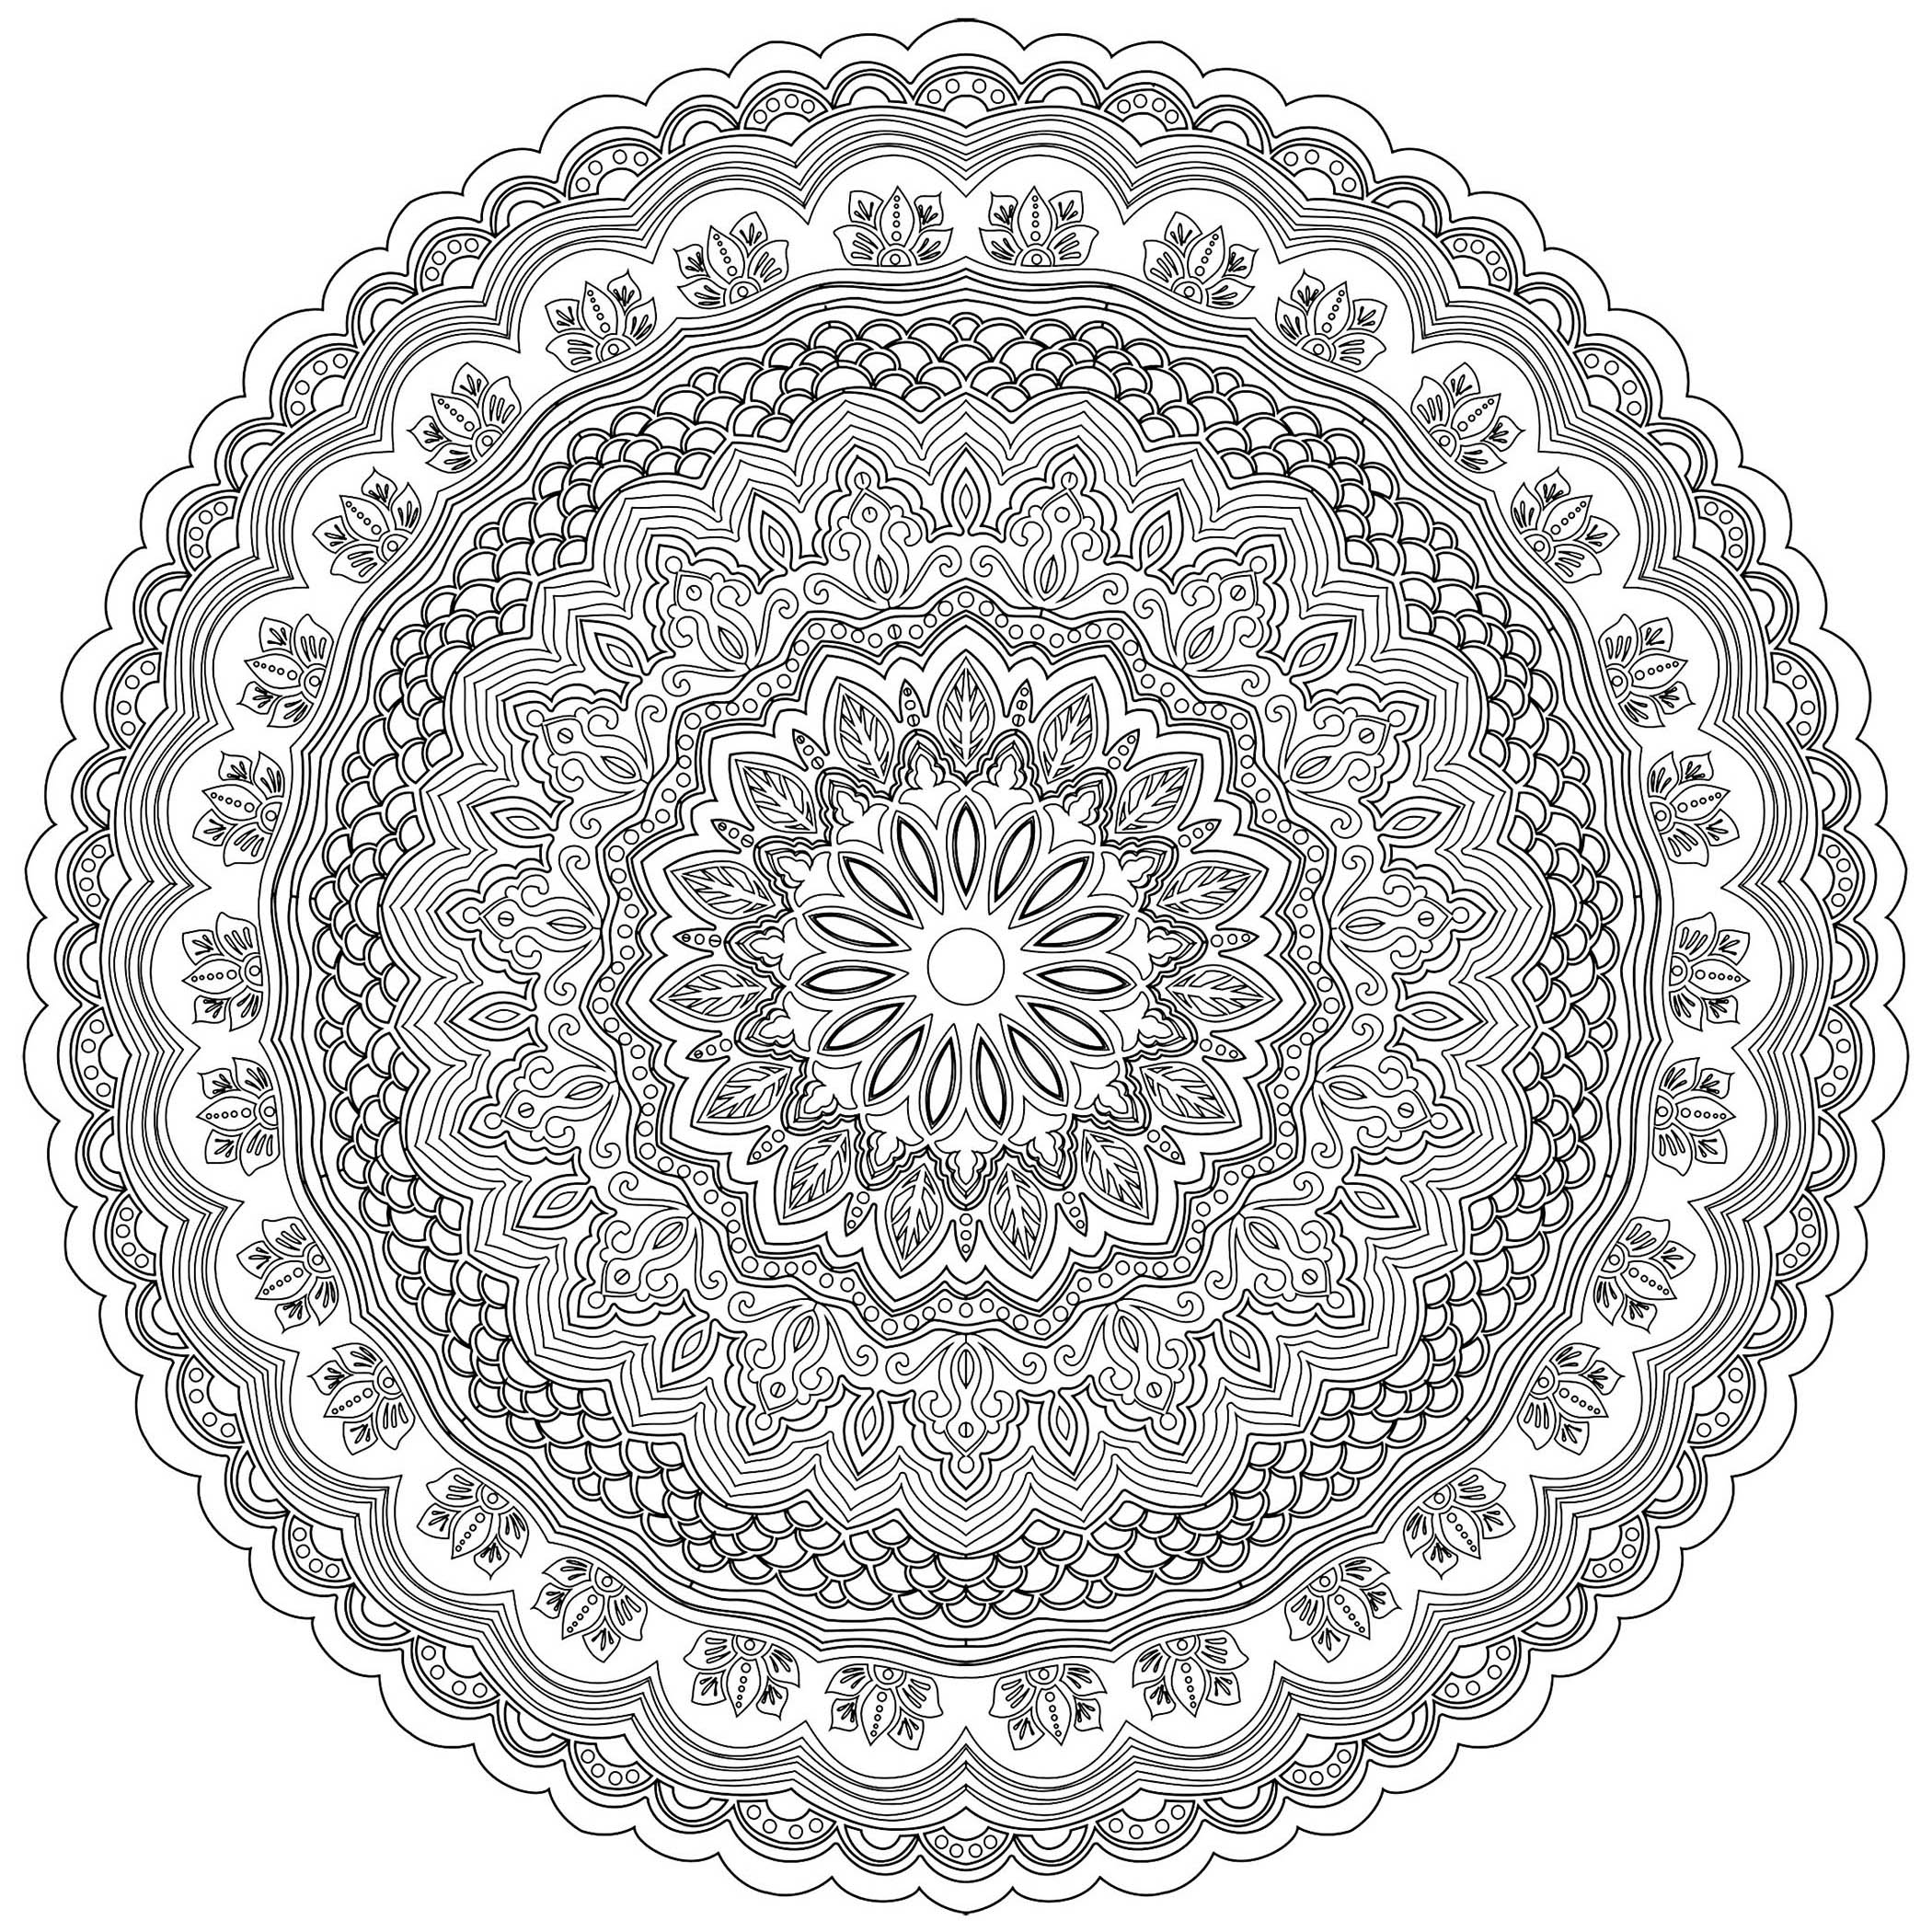 Prepare your pens and pencils to color this excellent Mandala full of small little details and intricate areas. Feel free to let your instincts decide where to color, and what colors to choose : blue, yellow, green, red, orange ...